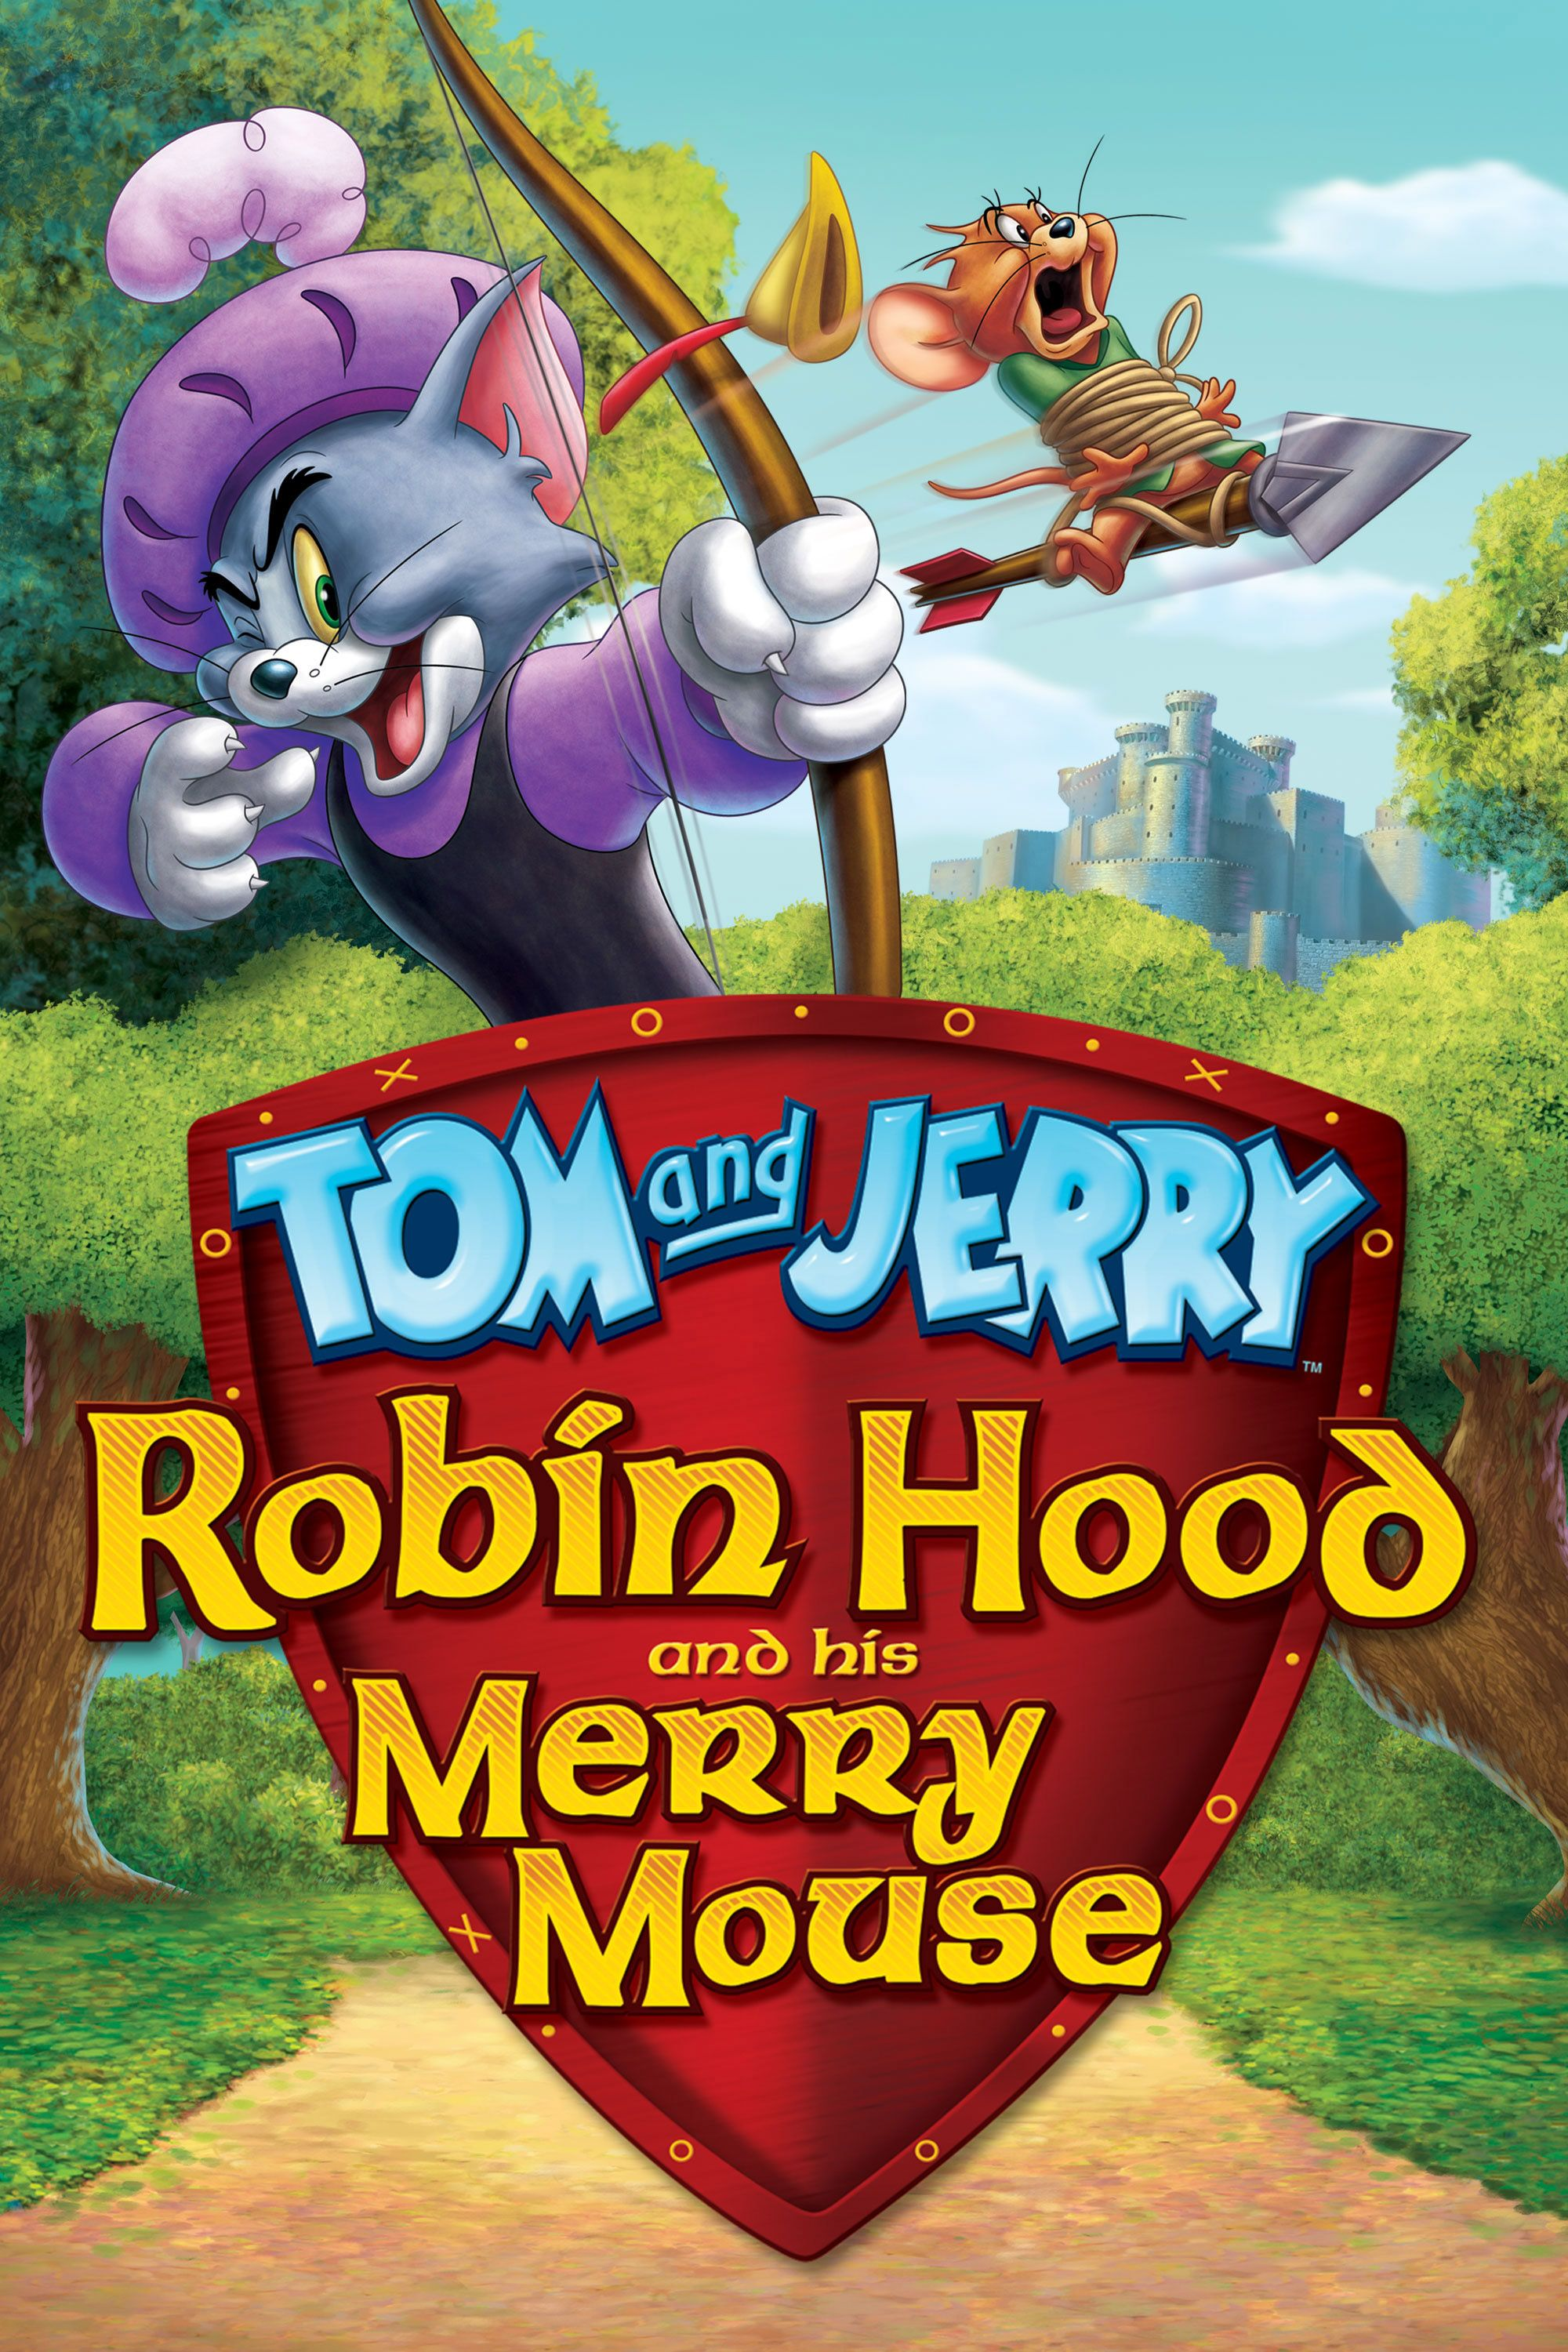 Tom and Jerry Robin Hood and His Merry Mouse cover